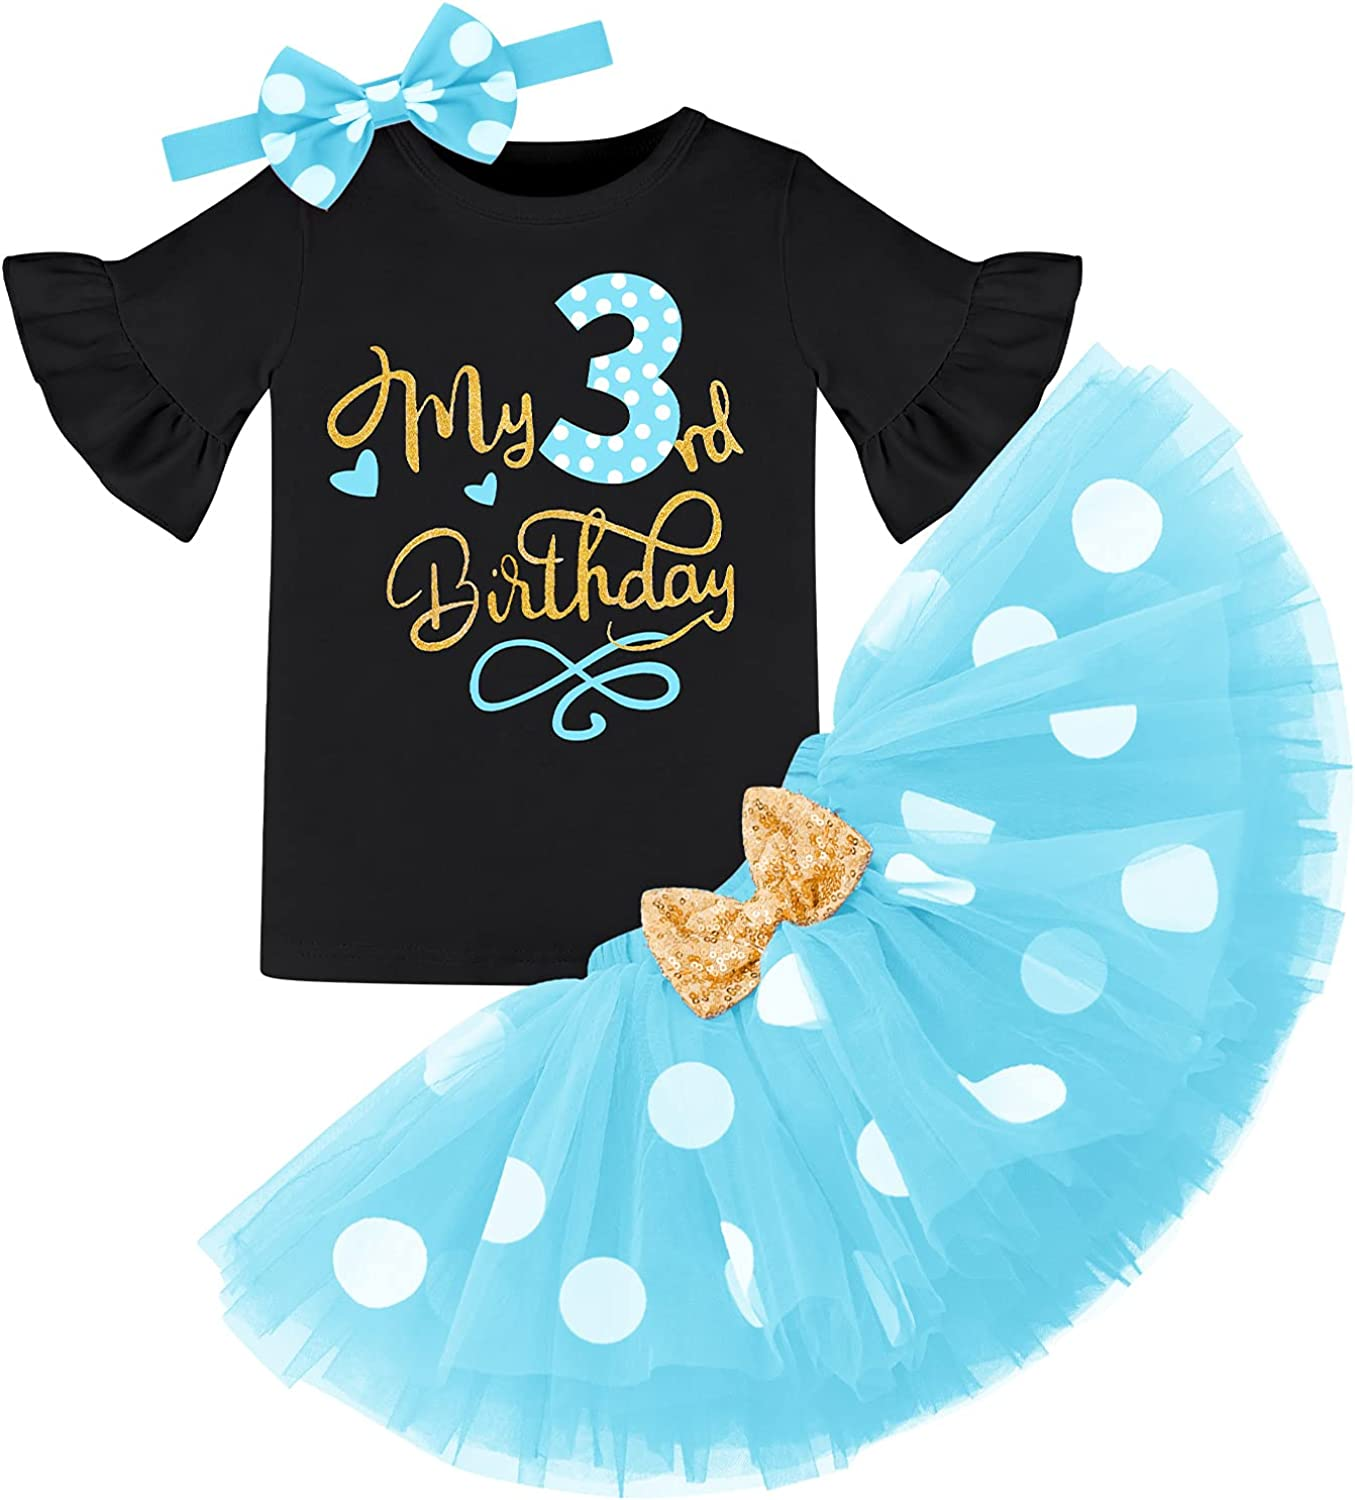 It's My 3rd Birthday Outfits Wild Three Party Clothing for Kids Polka Dots Shirt Sequin Tutu Skirt Mouse Princess Photo Shoot